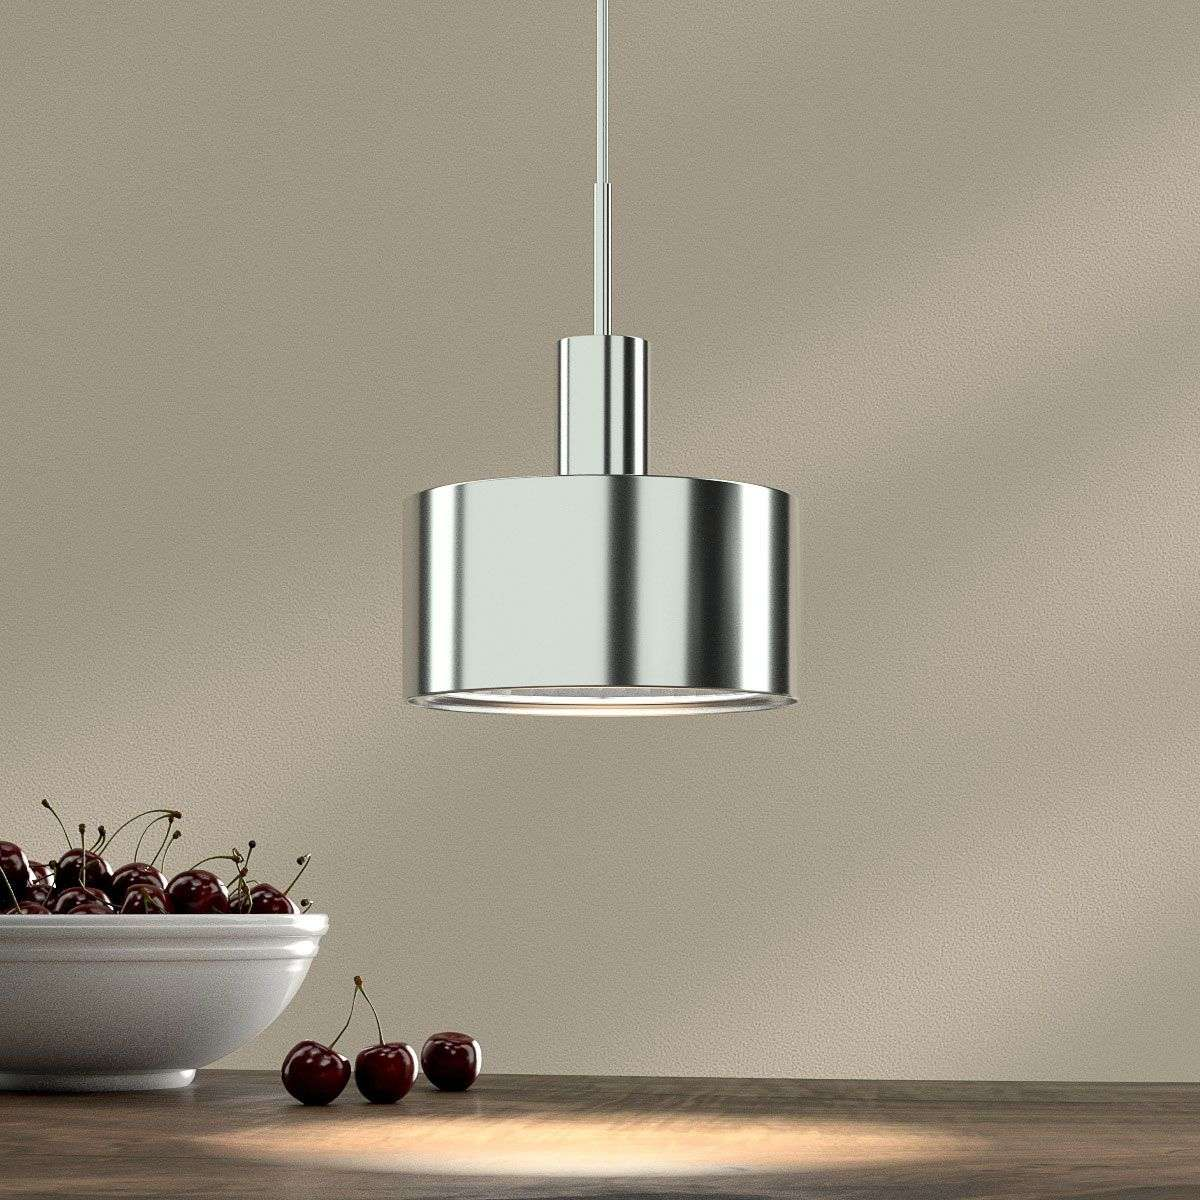 1-bulb pendant light AX20, chrome plated-1088038-31